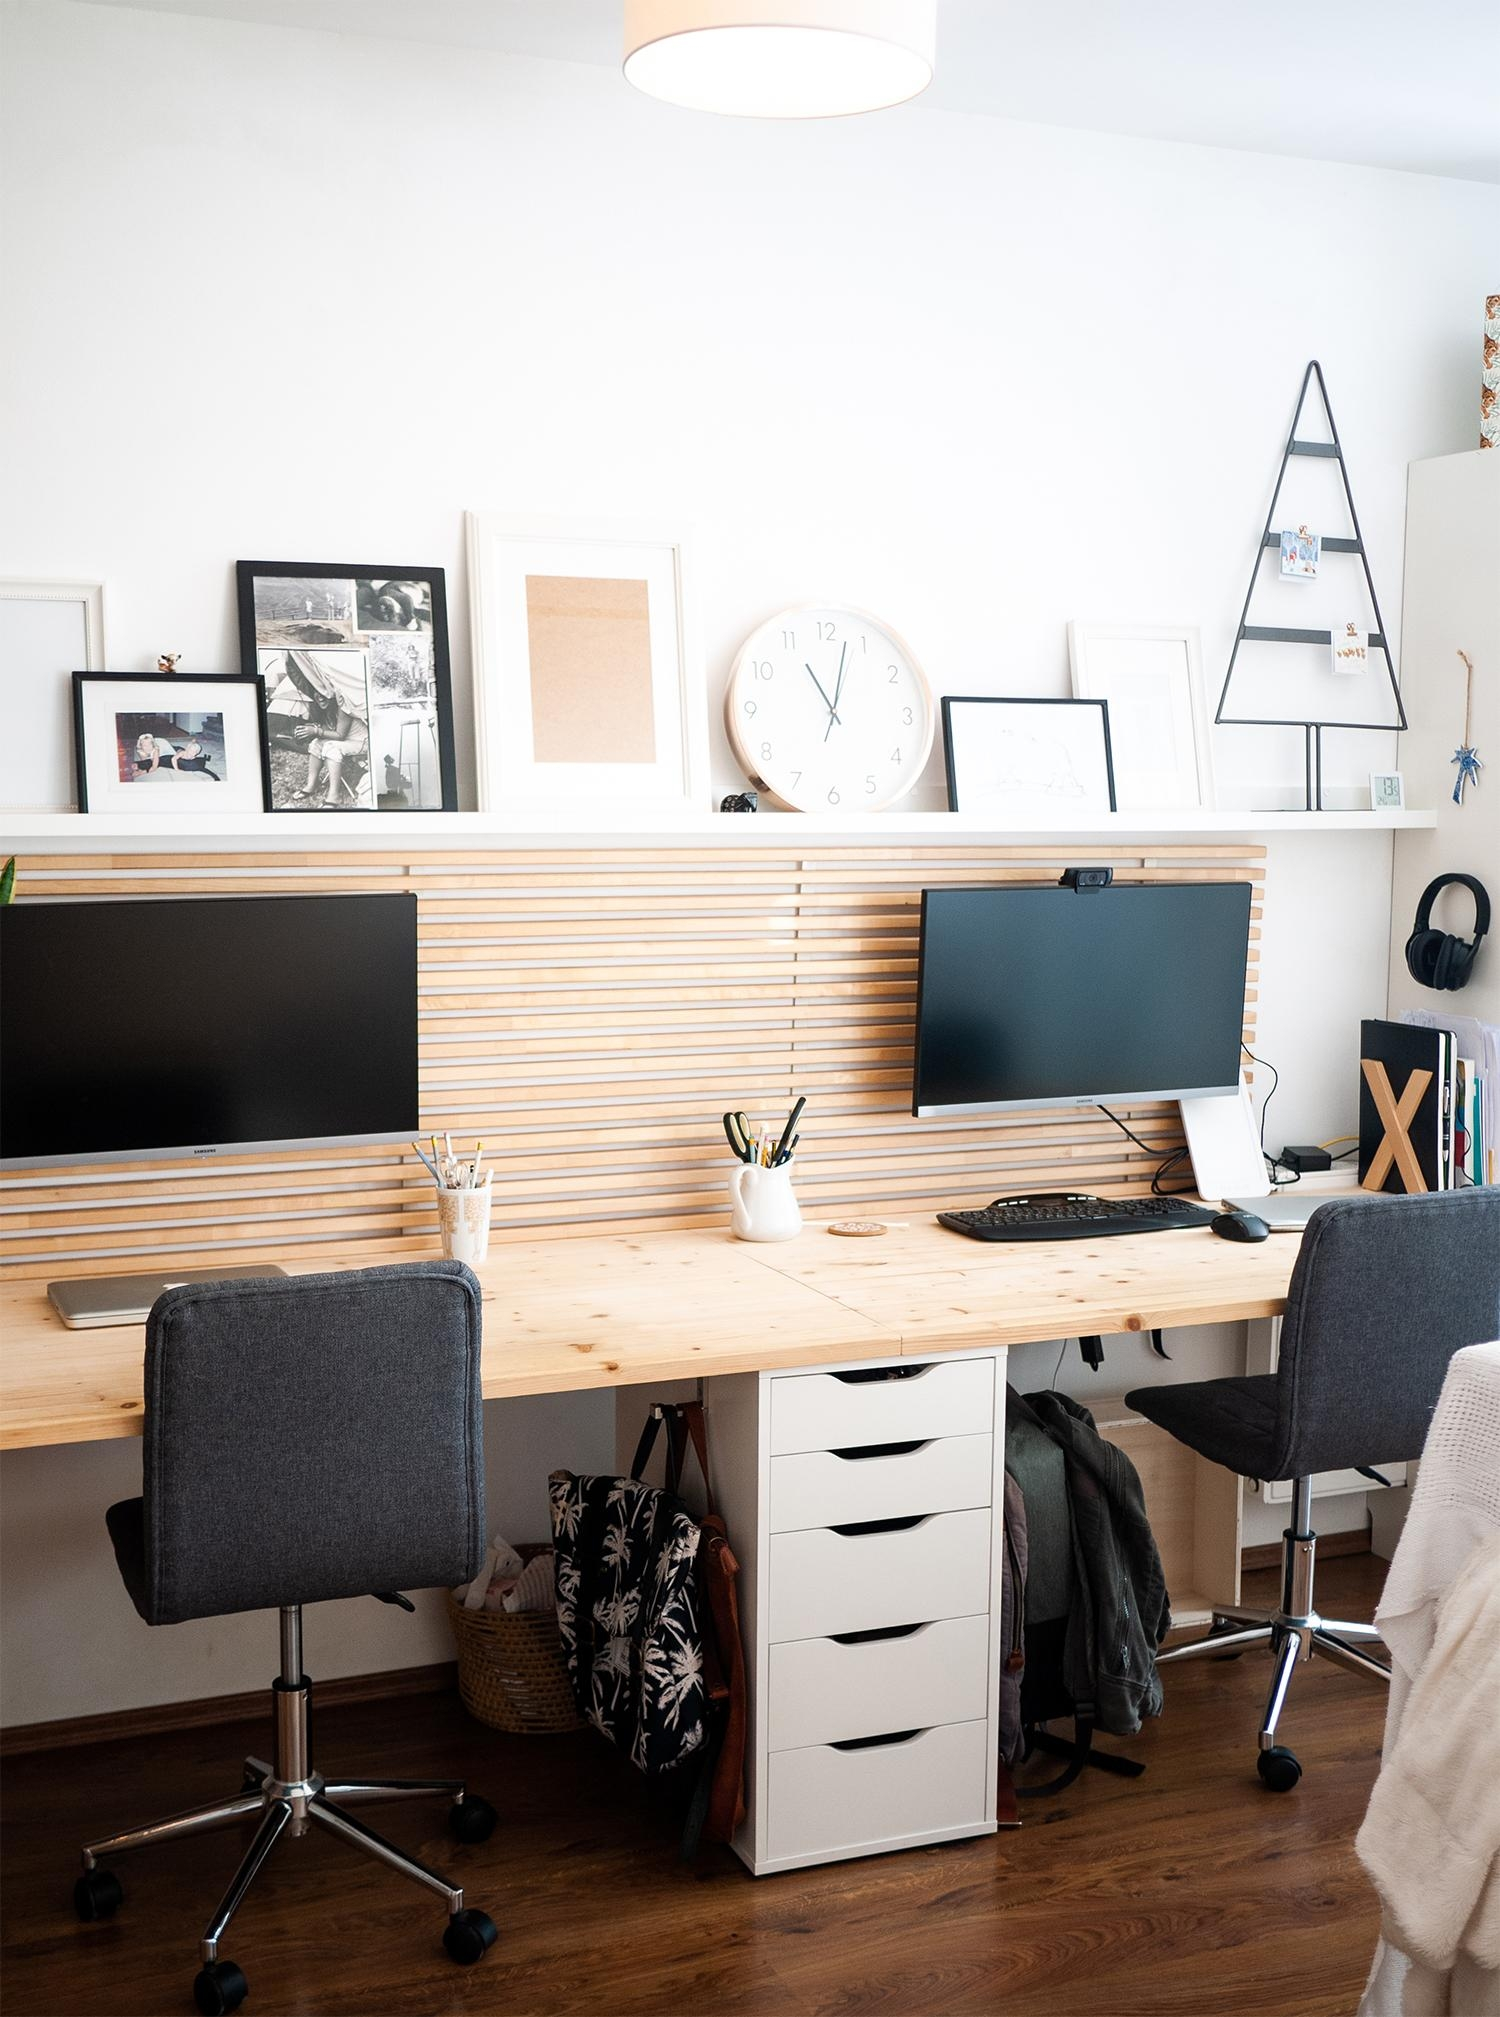 Our #wfh office makes Mondays easier :) #homeoffice